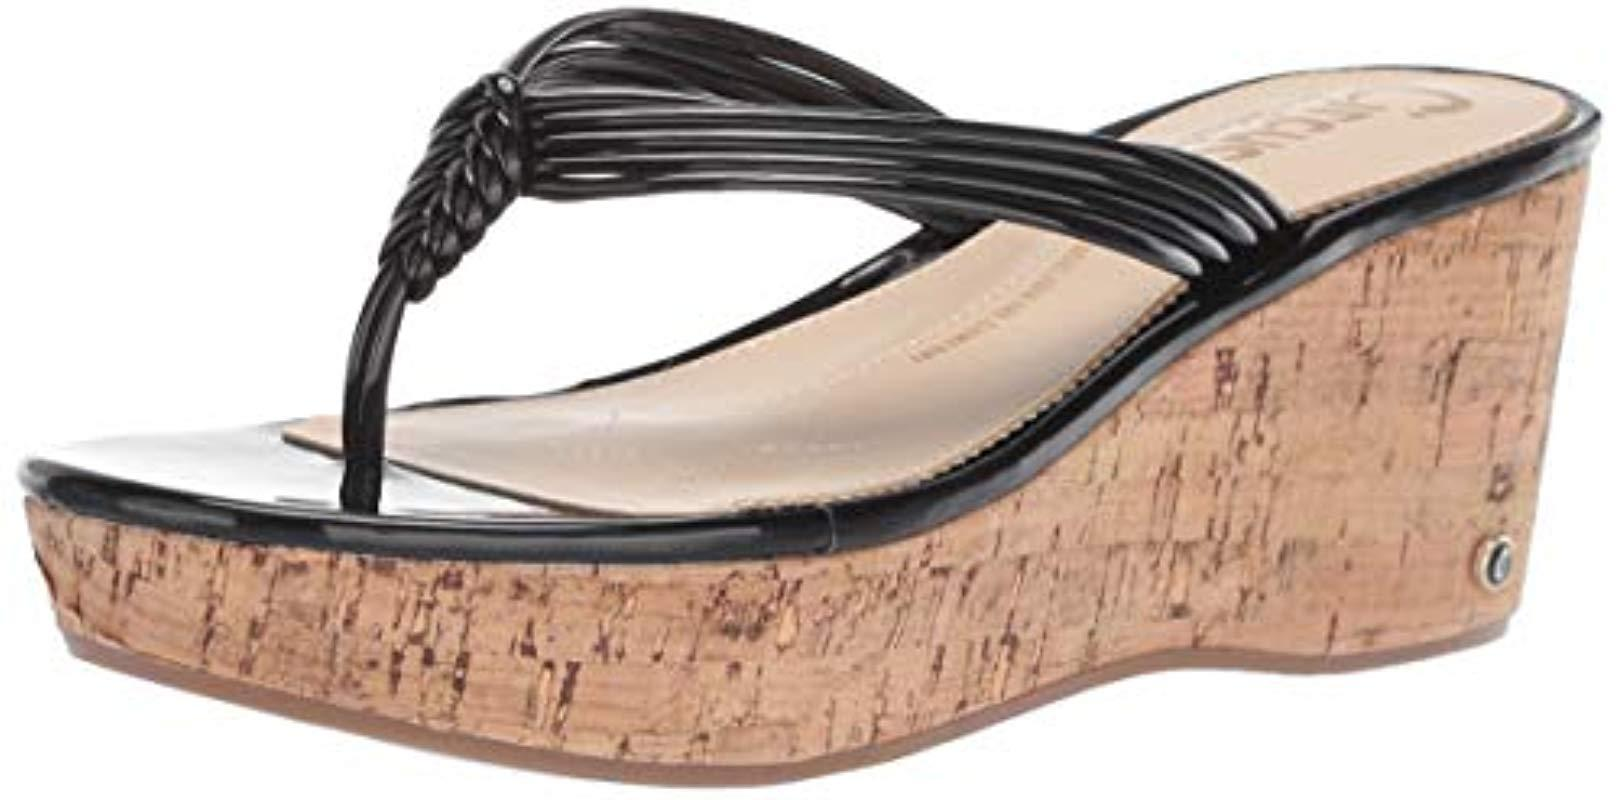 b079563c1 Lyst - Circus by Sam Edelman Ruby Wedge Sandal in Black - Save 28%